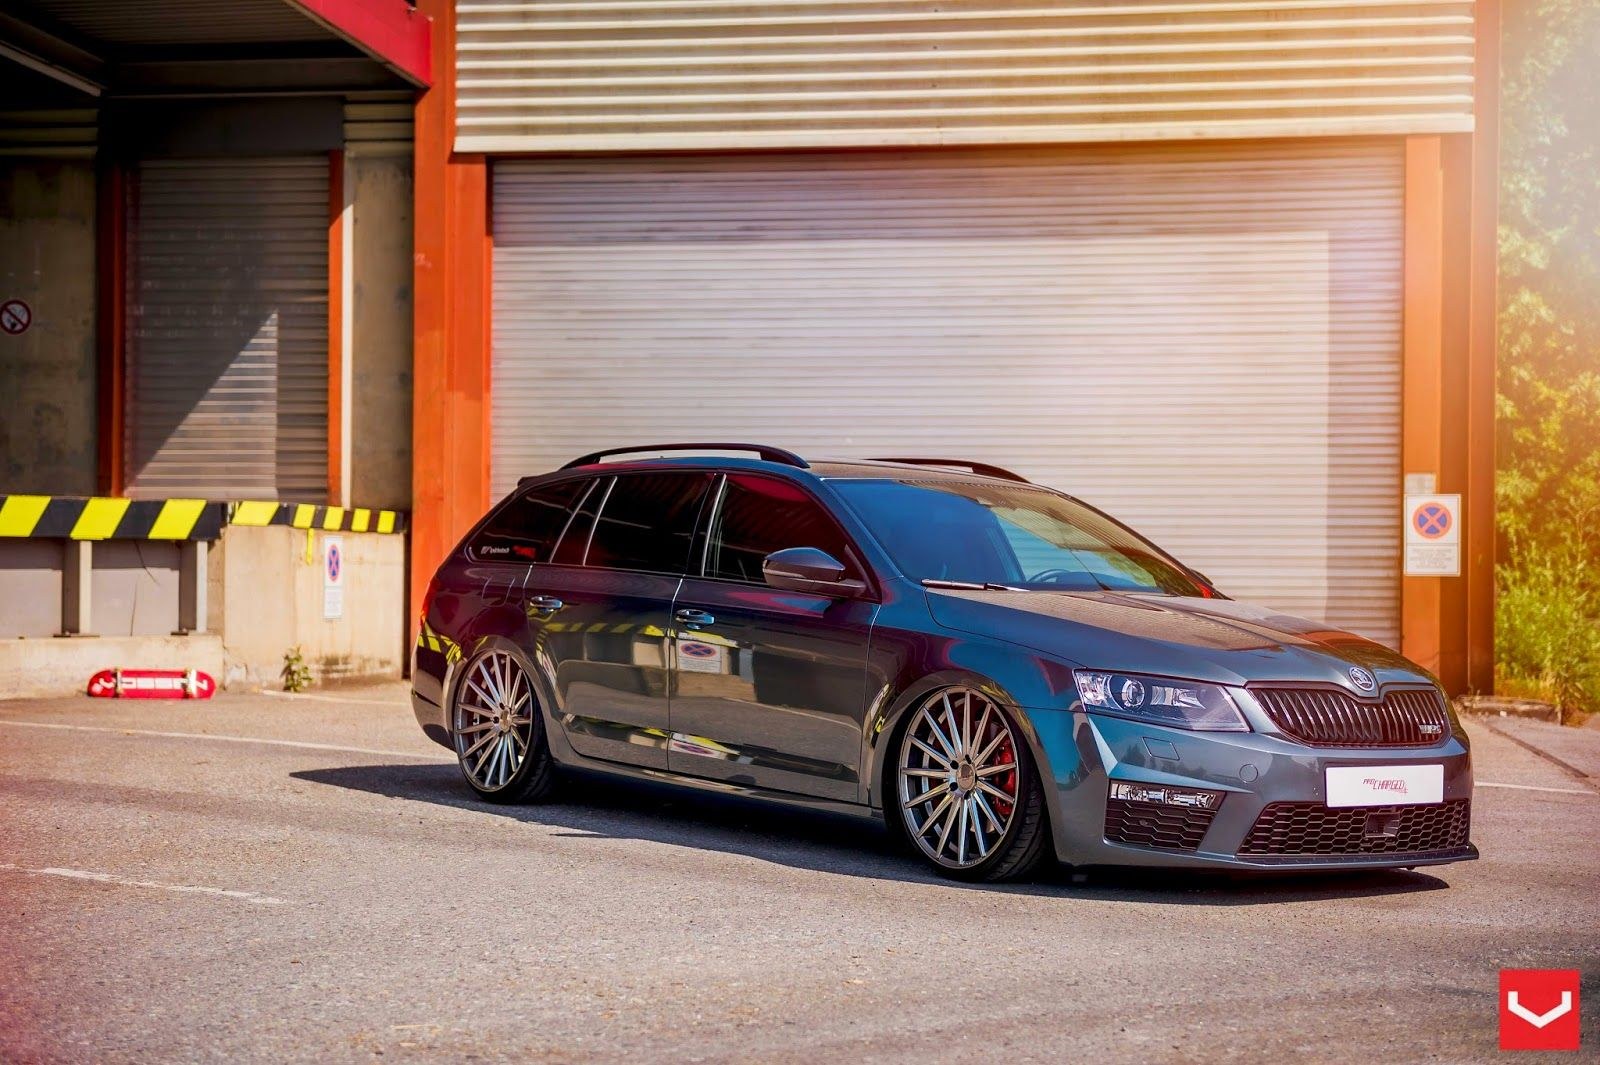 Skoda Octavia Rs2 On Vfs2 By Vossen Wheels Skoda Octavia Skoda